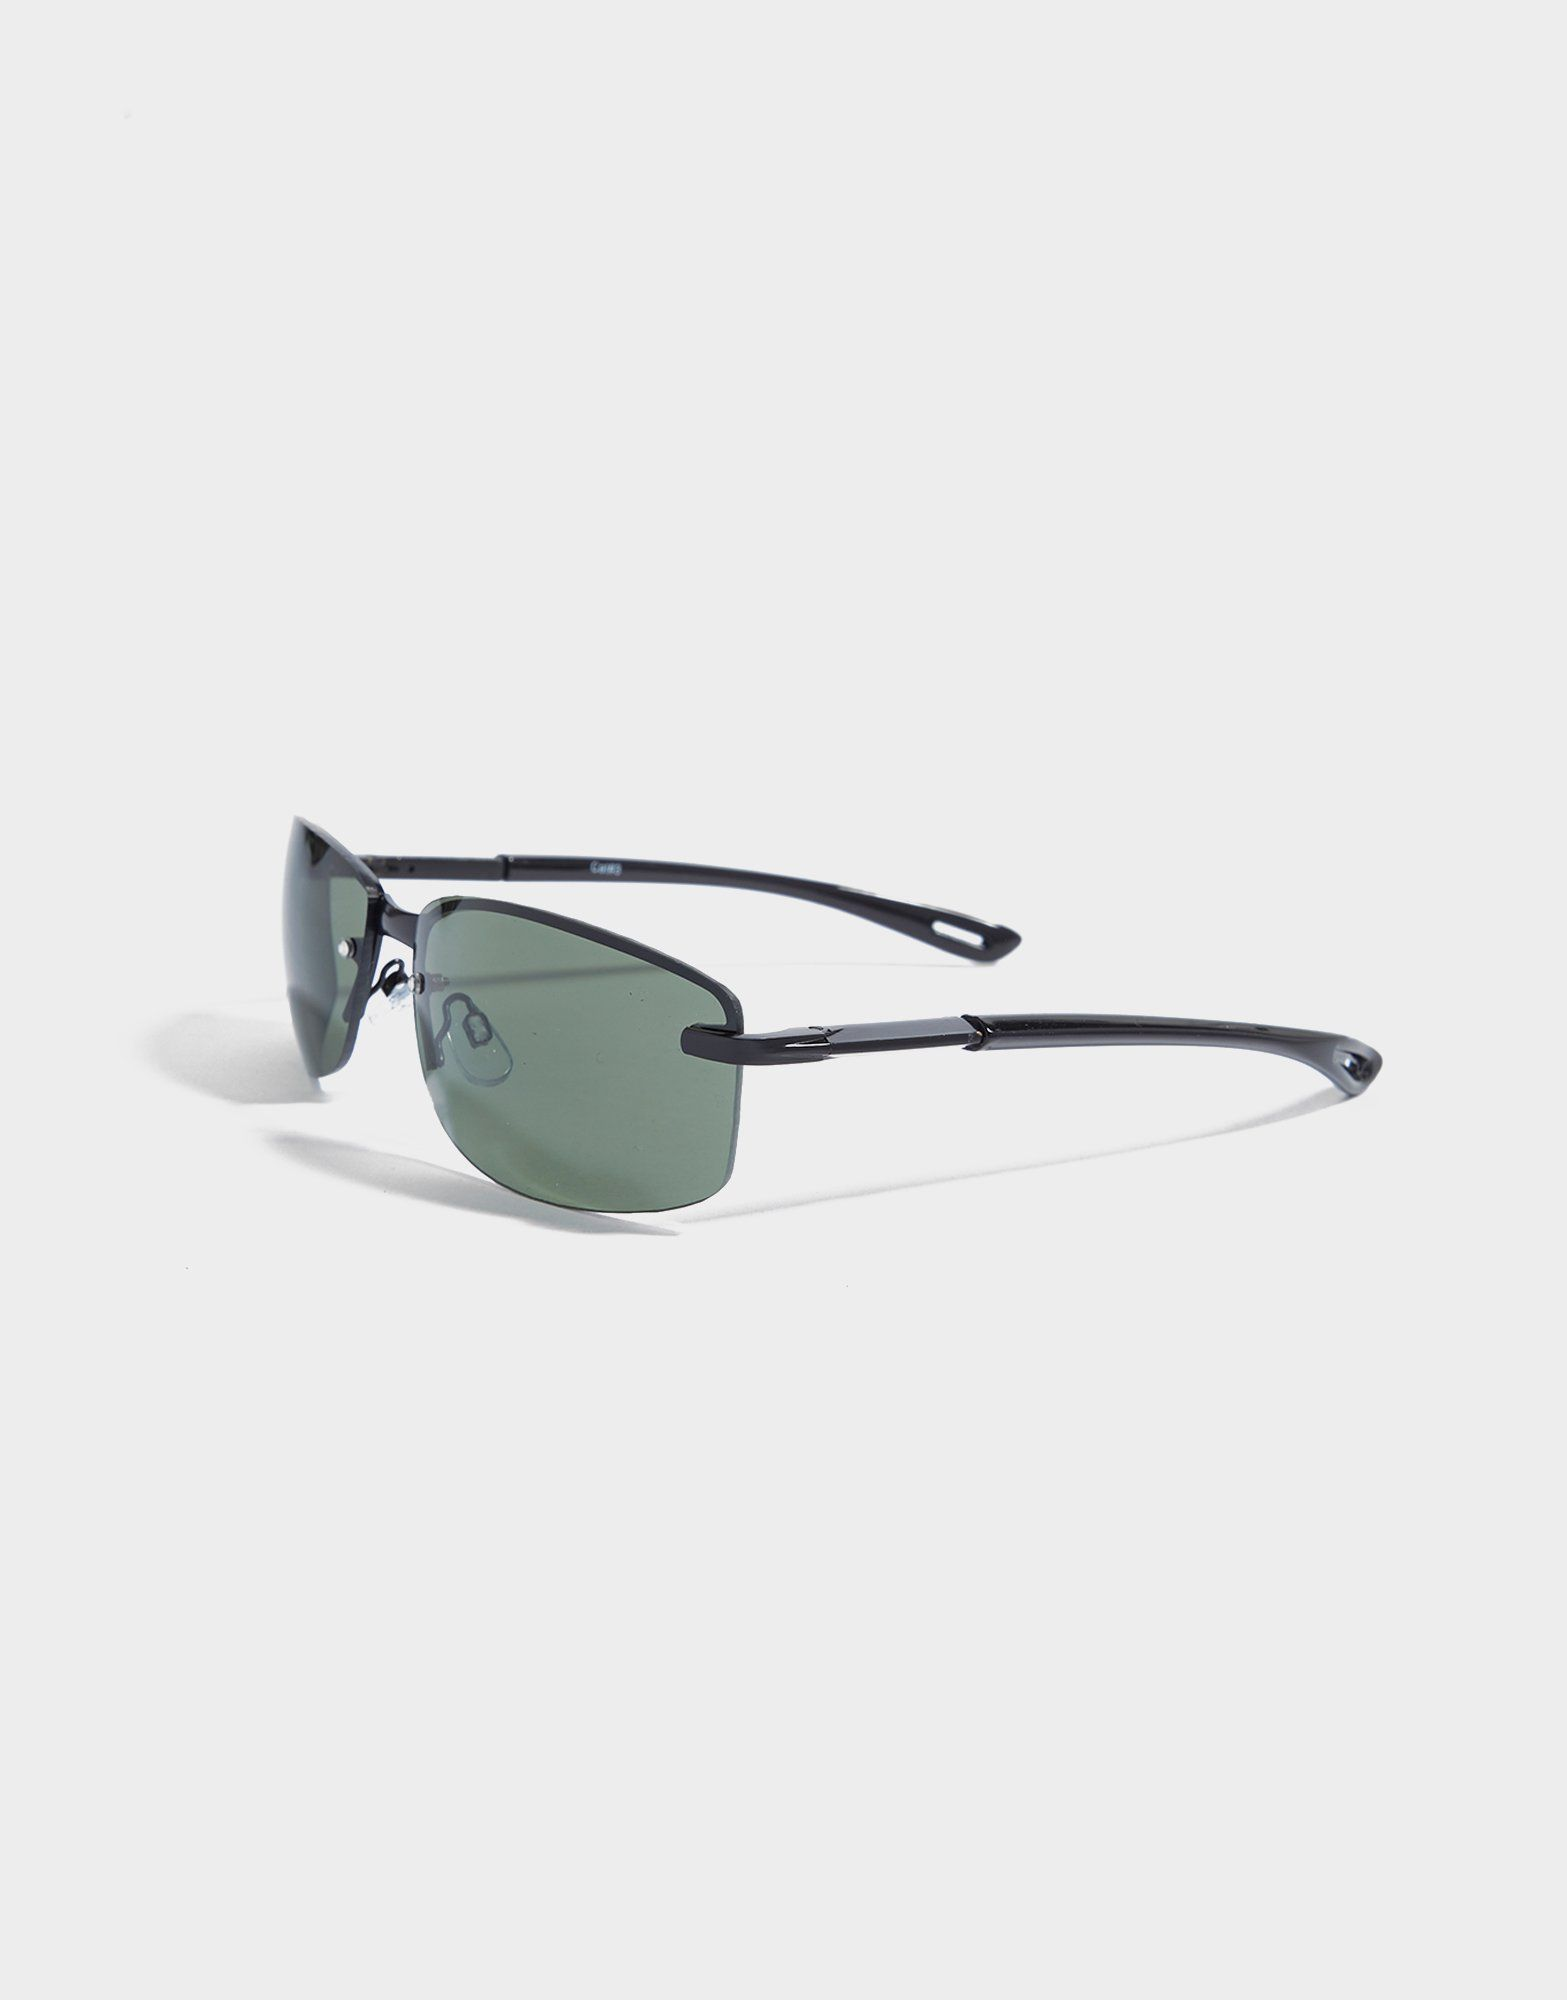 how to choose sunglasses size